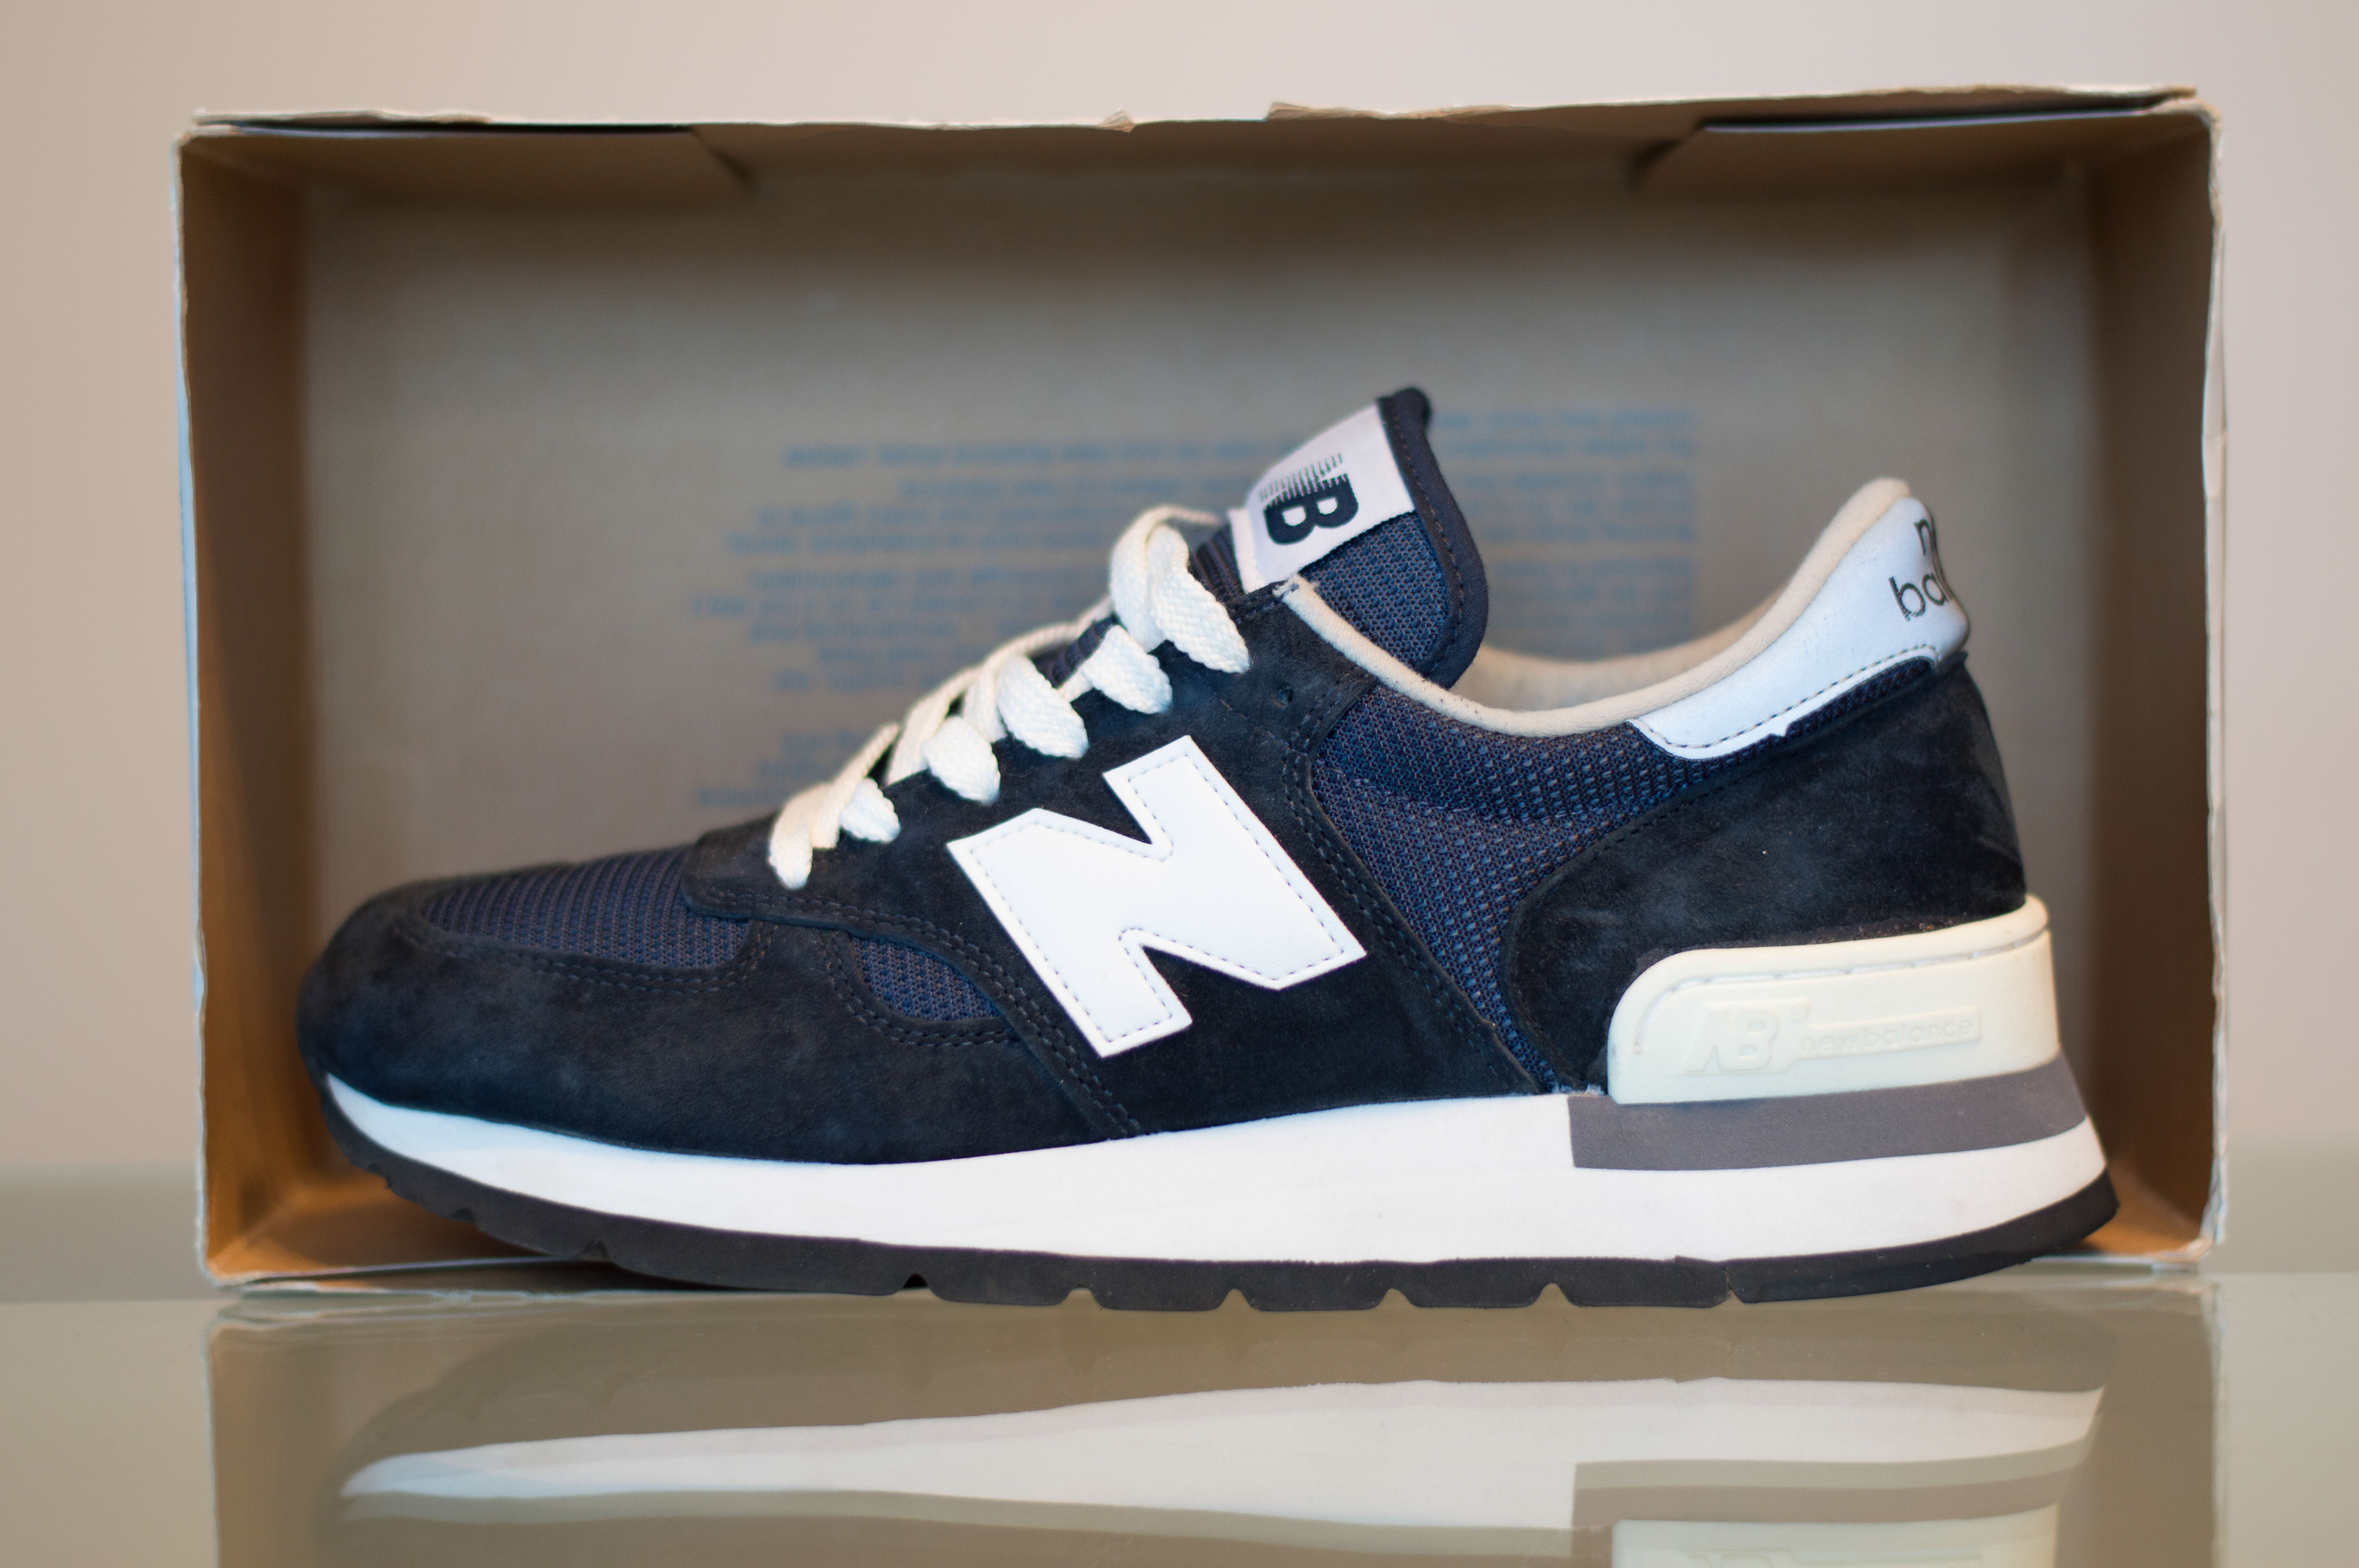 New Balance 990 Re-issues – thomaslindie 9e93c52156eb